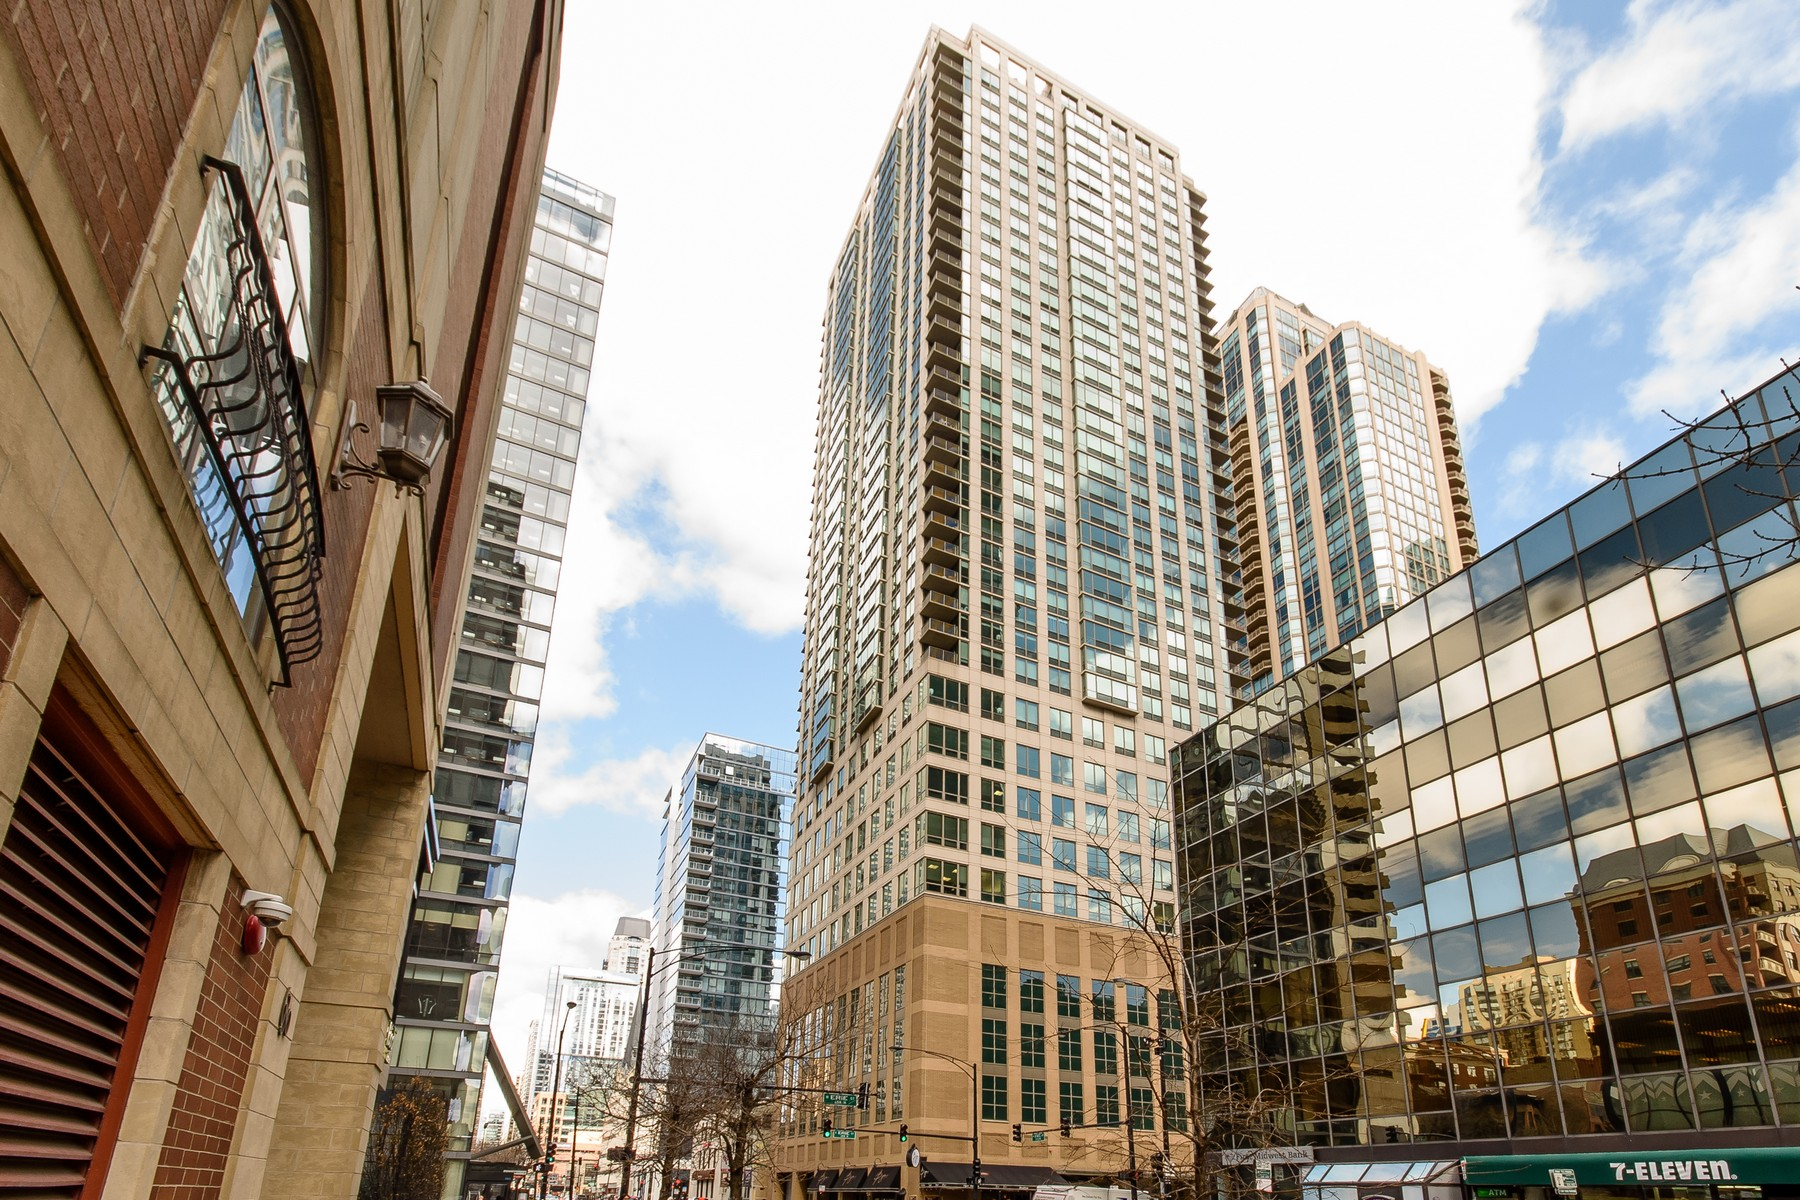 شقة بعمارة للـ Sale في Incredible Condo in River North 2 E Erie Street Unit 1211, Near North Side, Chicago, Illinois, 60611 United States